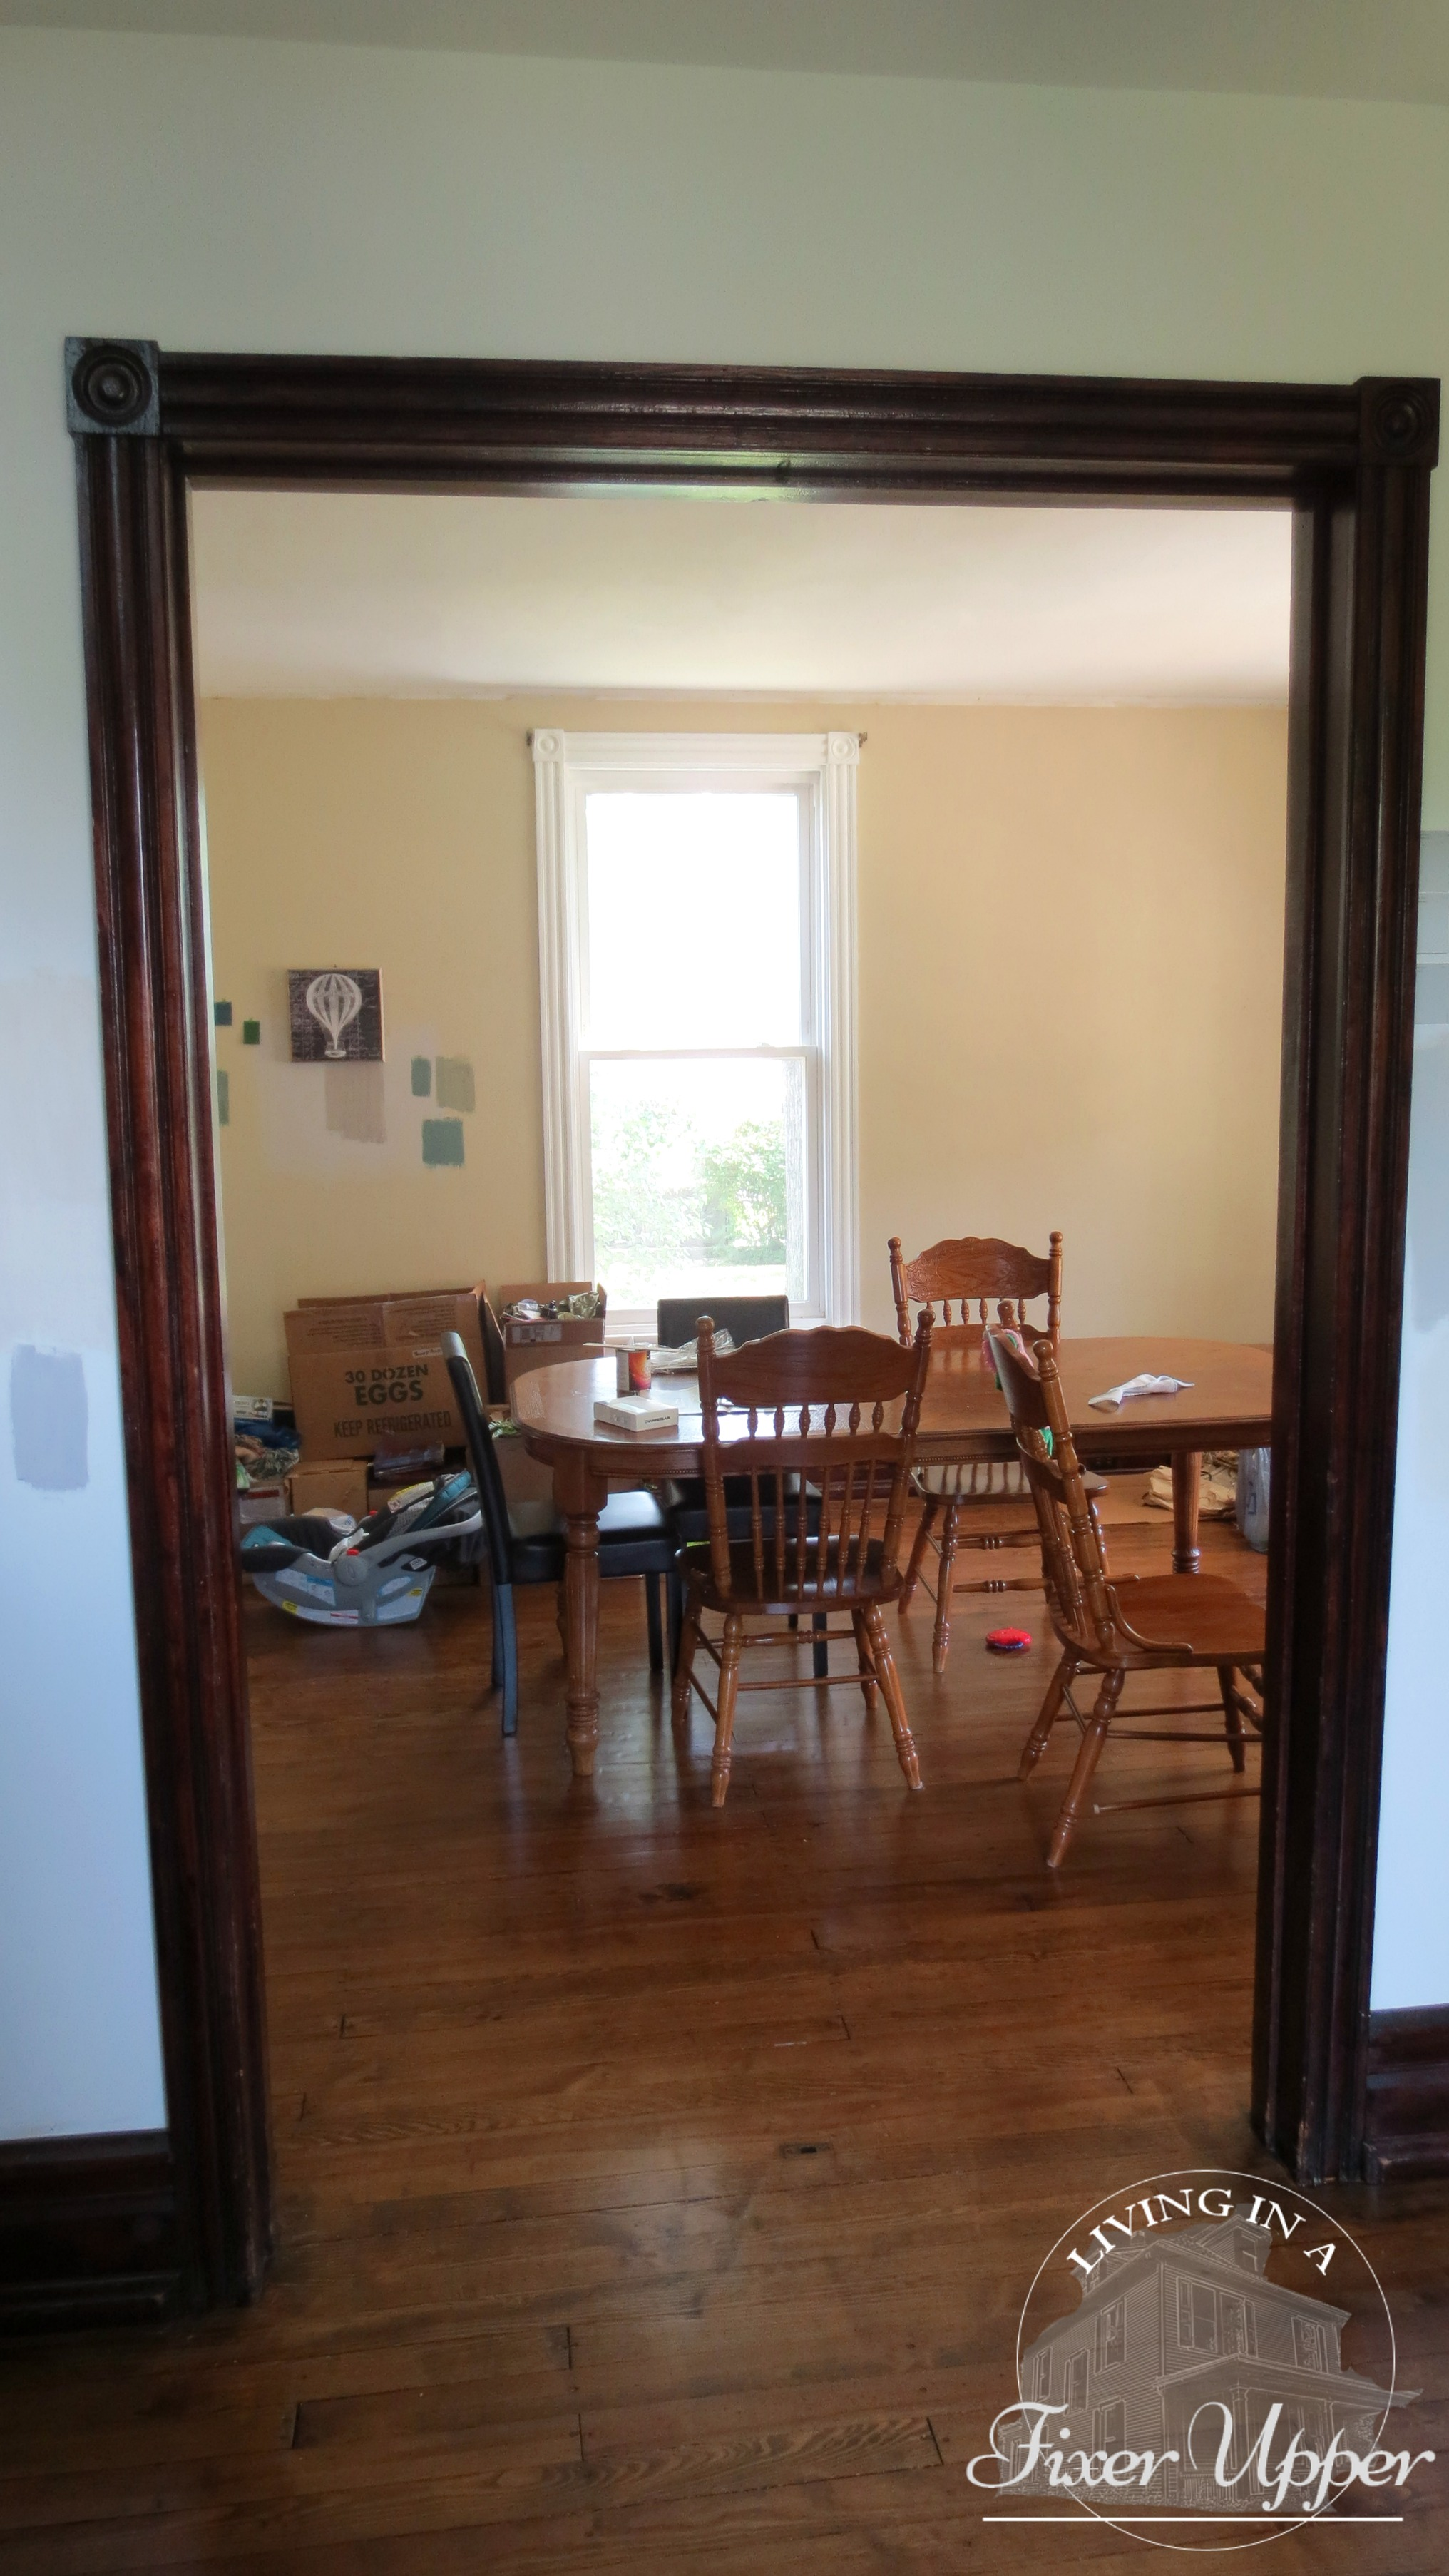 No Paint Ceiling Light And The Only Furniture Is Dining Table Chairs Yes We Do Have Unpacked Boxes In Corner That Sat There